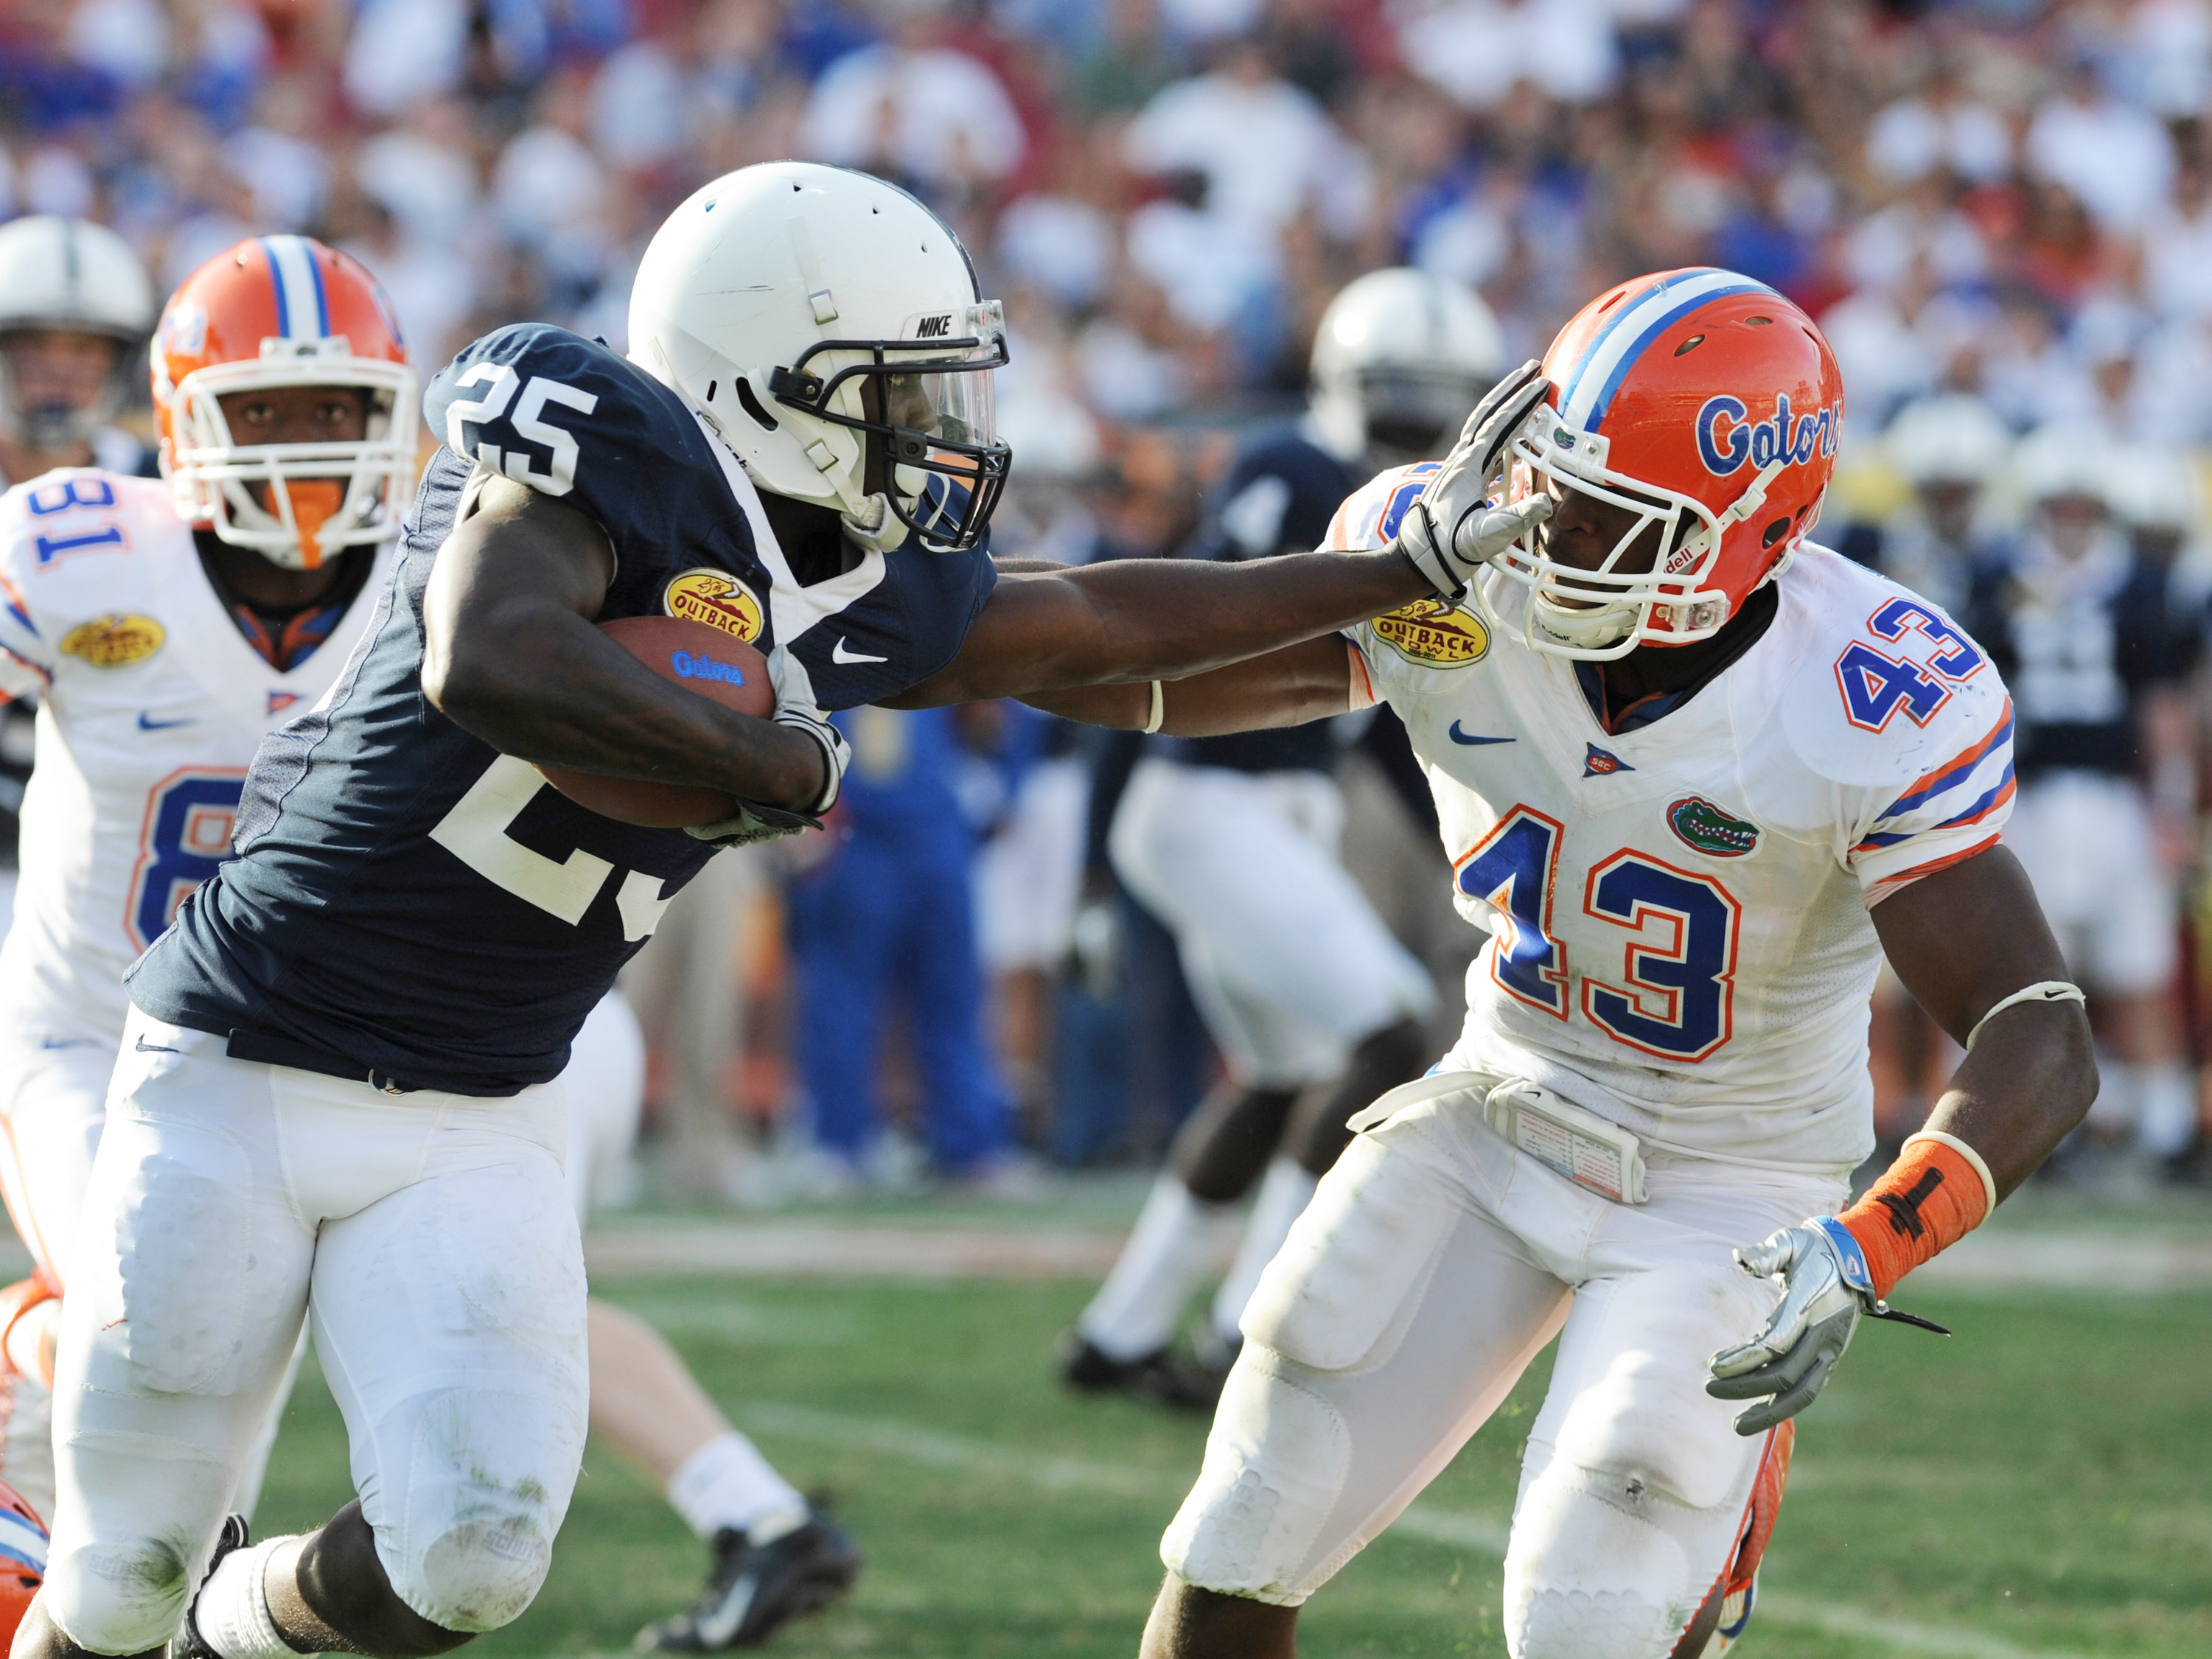 TAMPA, FL - JANUARY 1:  Running back Evan Royster #22 of the Penn State Nittany Lions pushed off linebacker Jelani Jenkins #43 of  the Florida Gators January 1, 2010 in the 25th Outback Bowl at Raymond James Stadium in Tampa, Florida.  (Photo by Al Messer